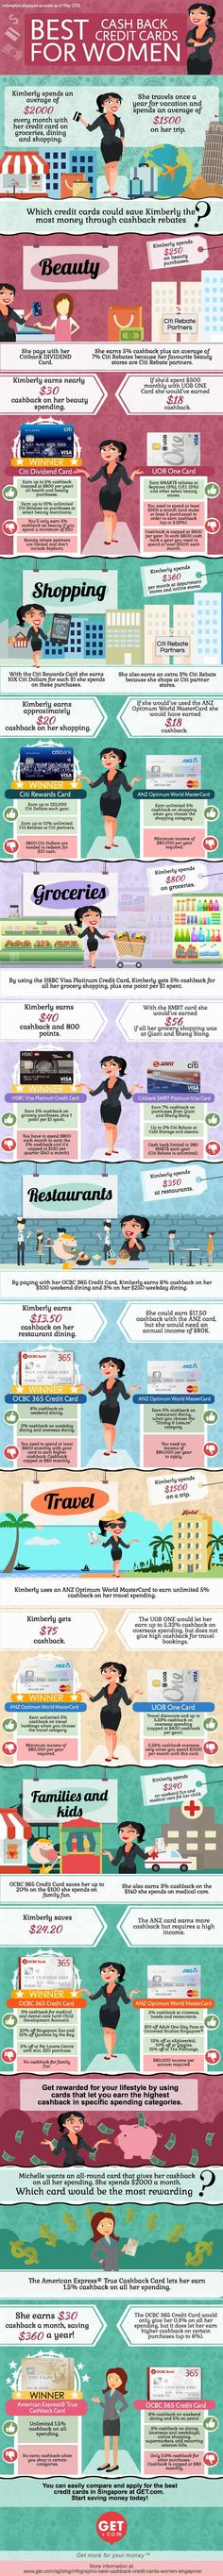 Infographic: 2015's Best Cashback Credit Cards For Women In Singapore